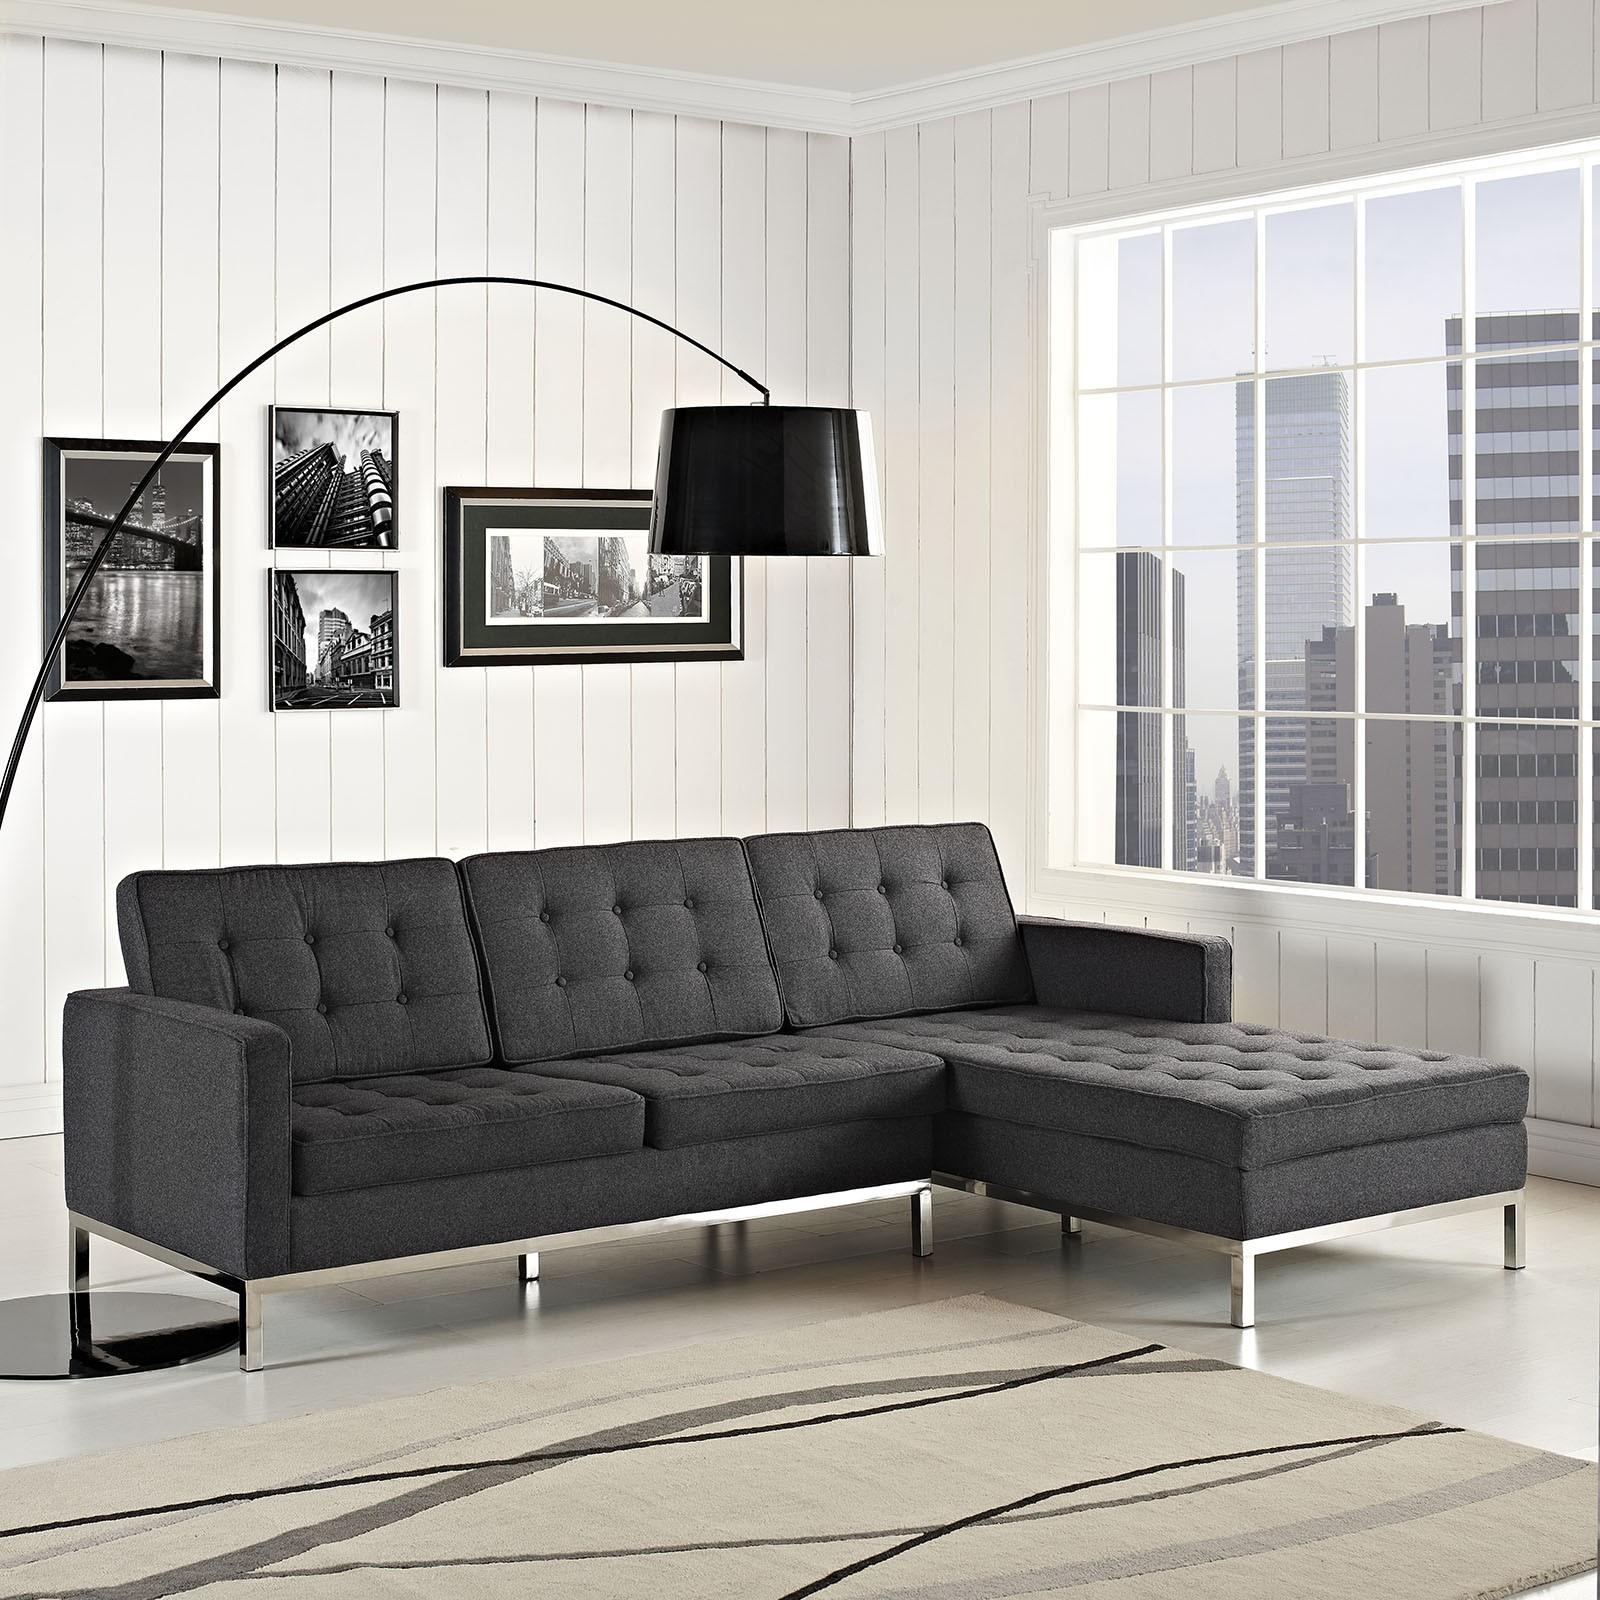 Florence Knoll Sofa Replica With Inspiration Hd Images 38955 Regarding Florence Knoll Fabric Sofas (View 10 of 20)